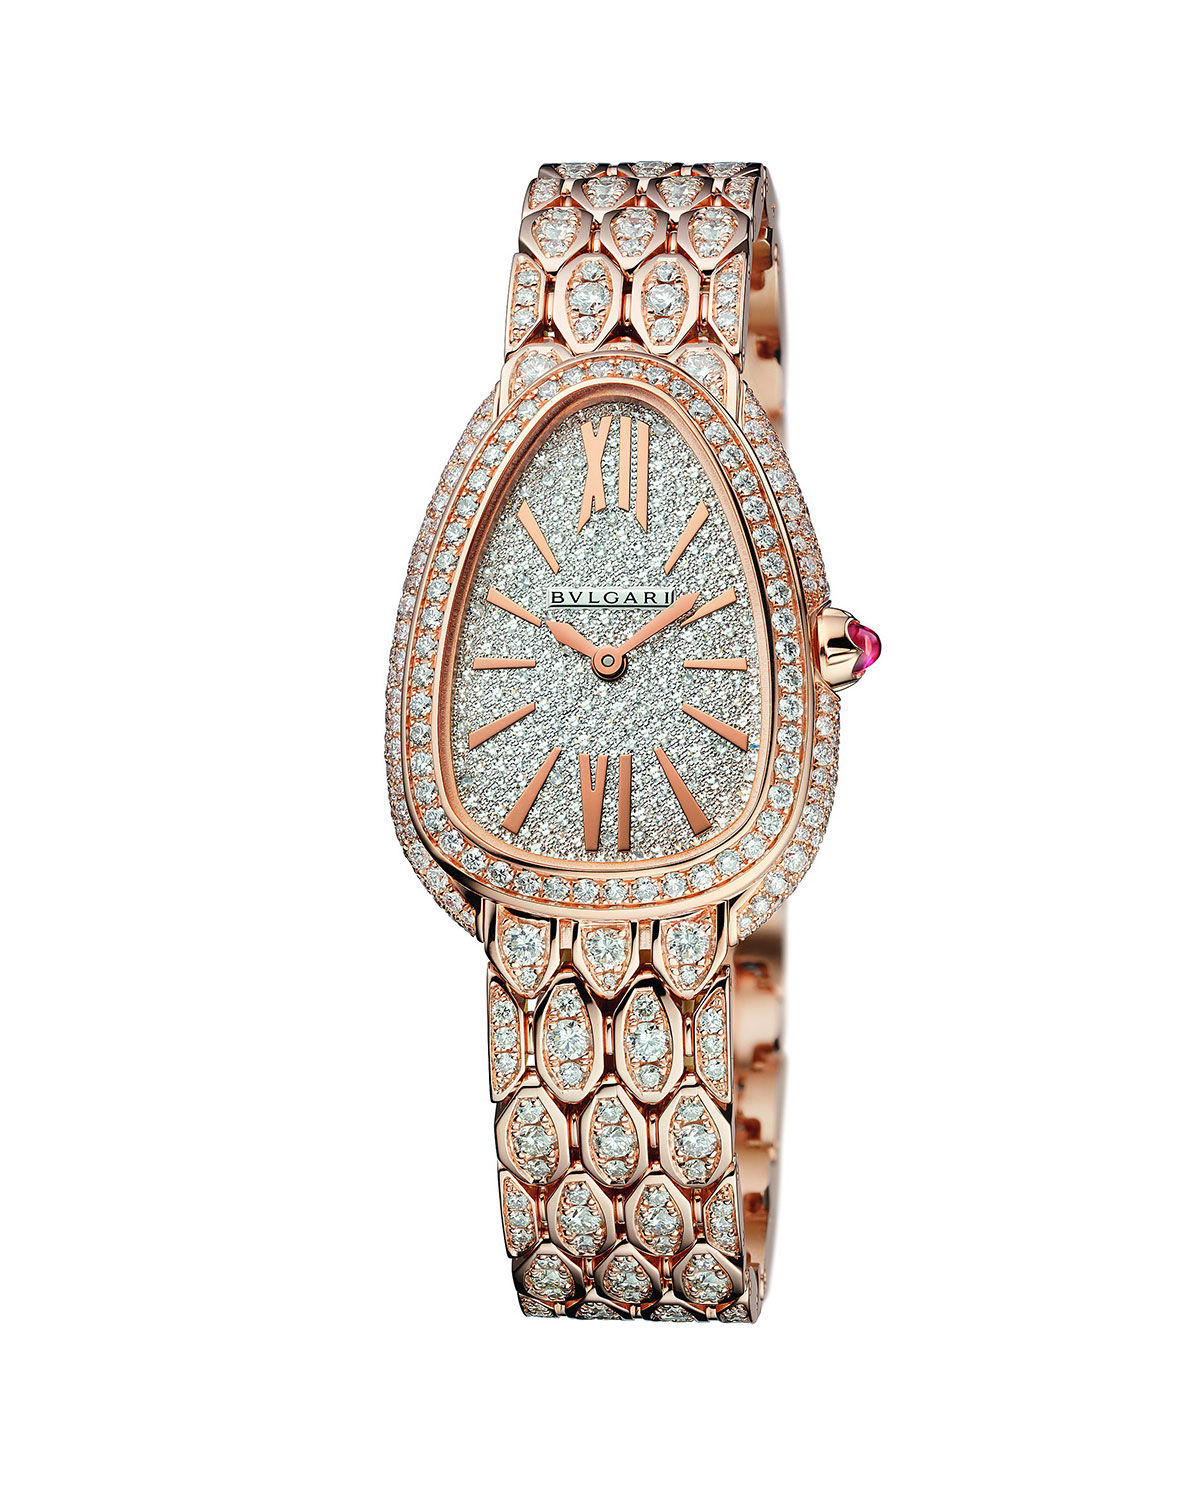 BVLGARI Serpenti Seduttori 33mm Diamond Watch w/ Bracelet, Rose Gold